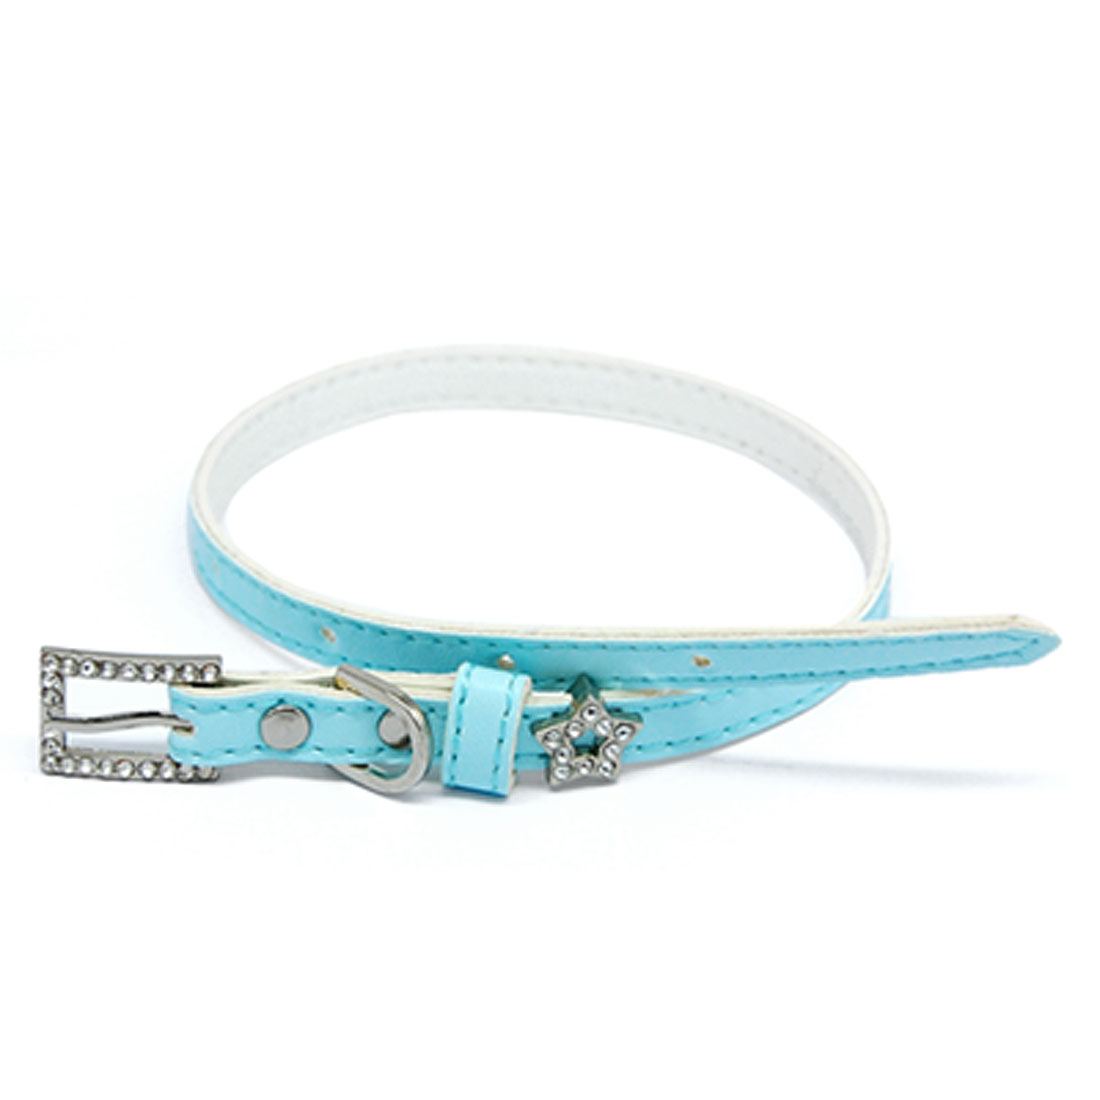 Rhinestone Star Pet Dog Neck Collar Leather Band Strap Skyblue